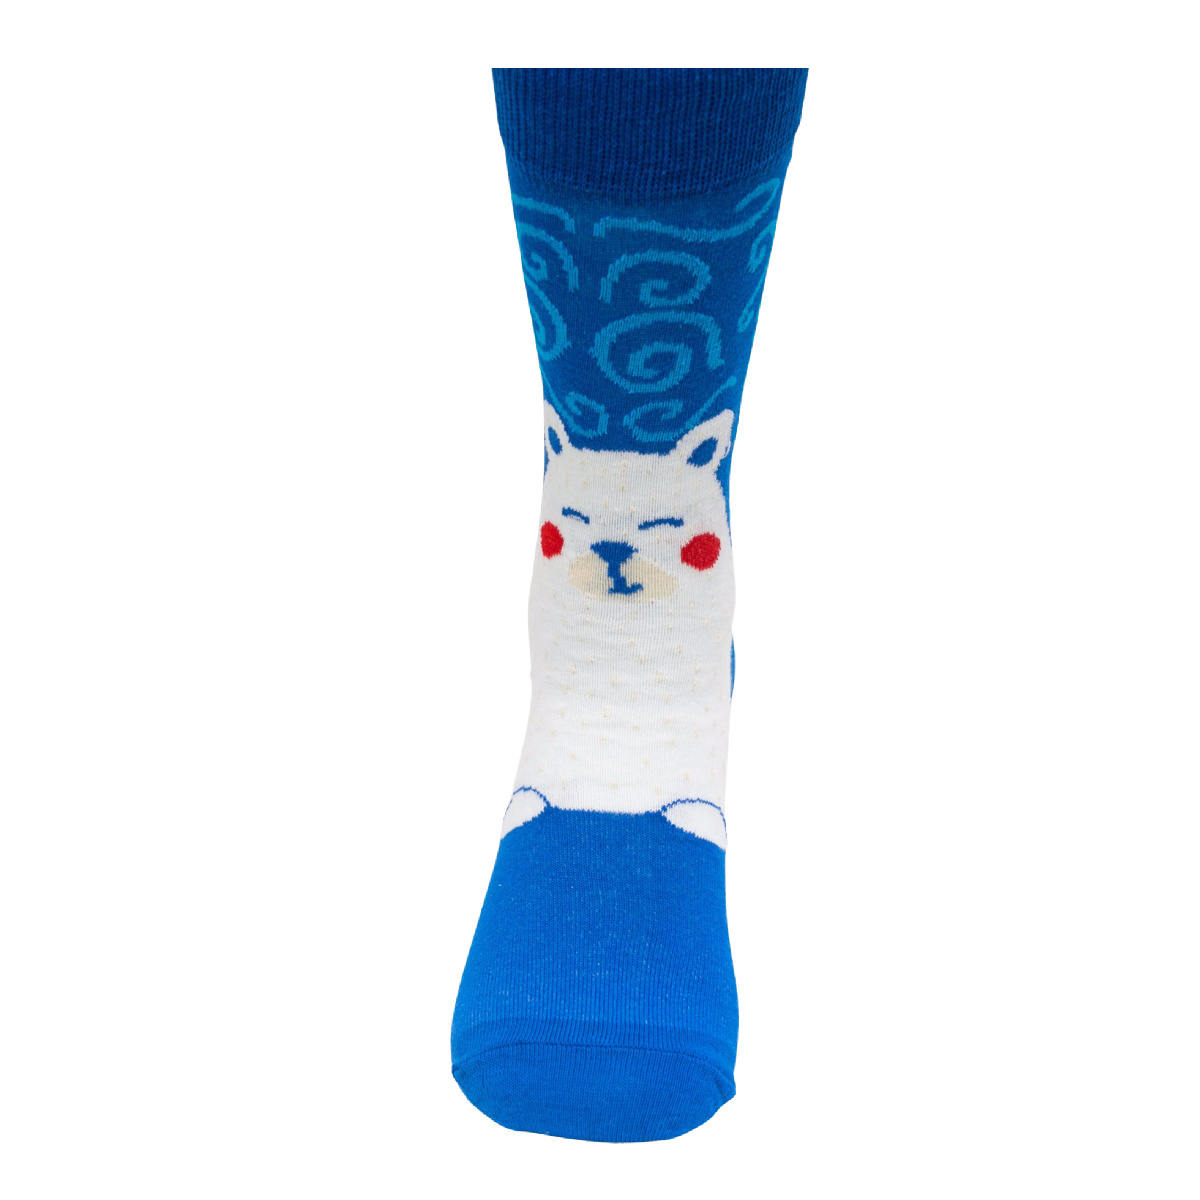 Socks Atomica Socks Atomica Polar Bear Blues